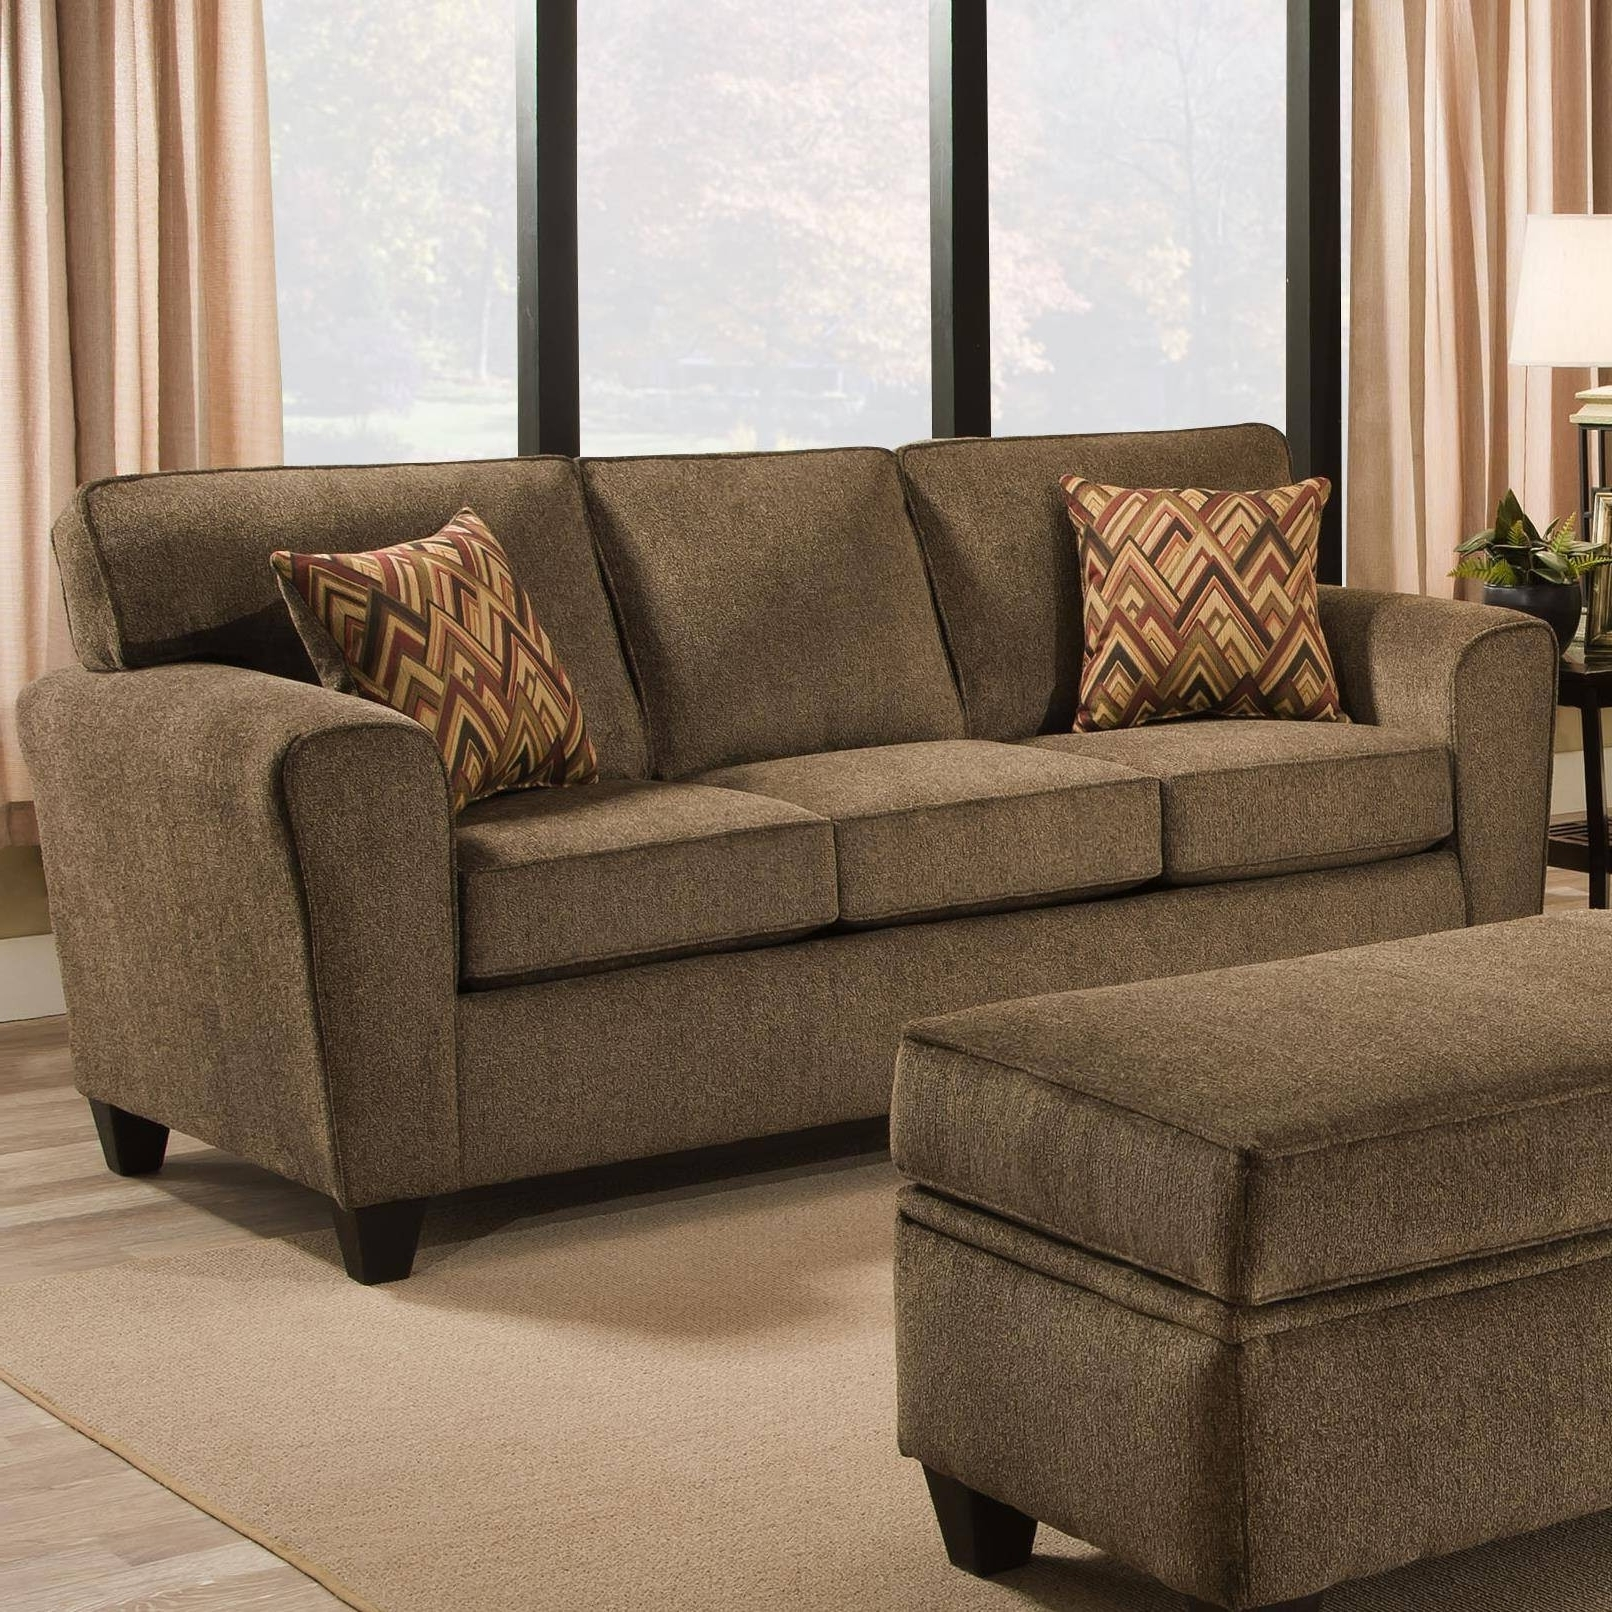 Newest Furniture : Ethan Allen Down Filled Sofa Beautiful Sectional Sofas Inside Down Filled Sofas (View 12 of 20)